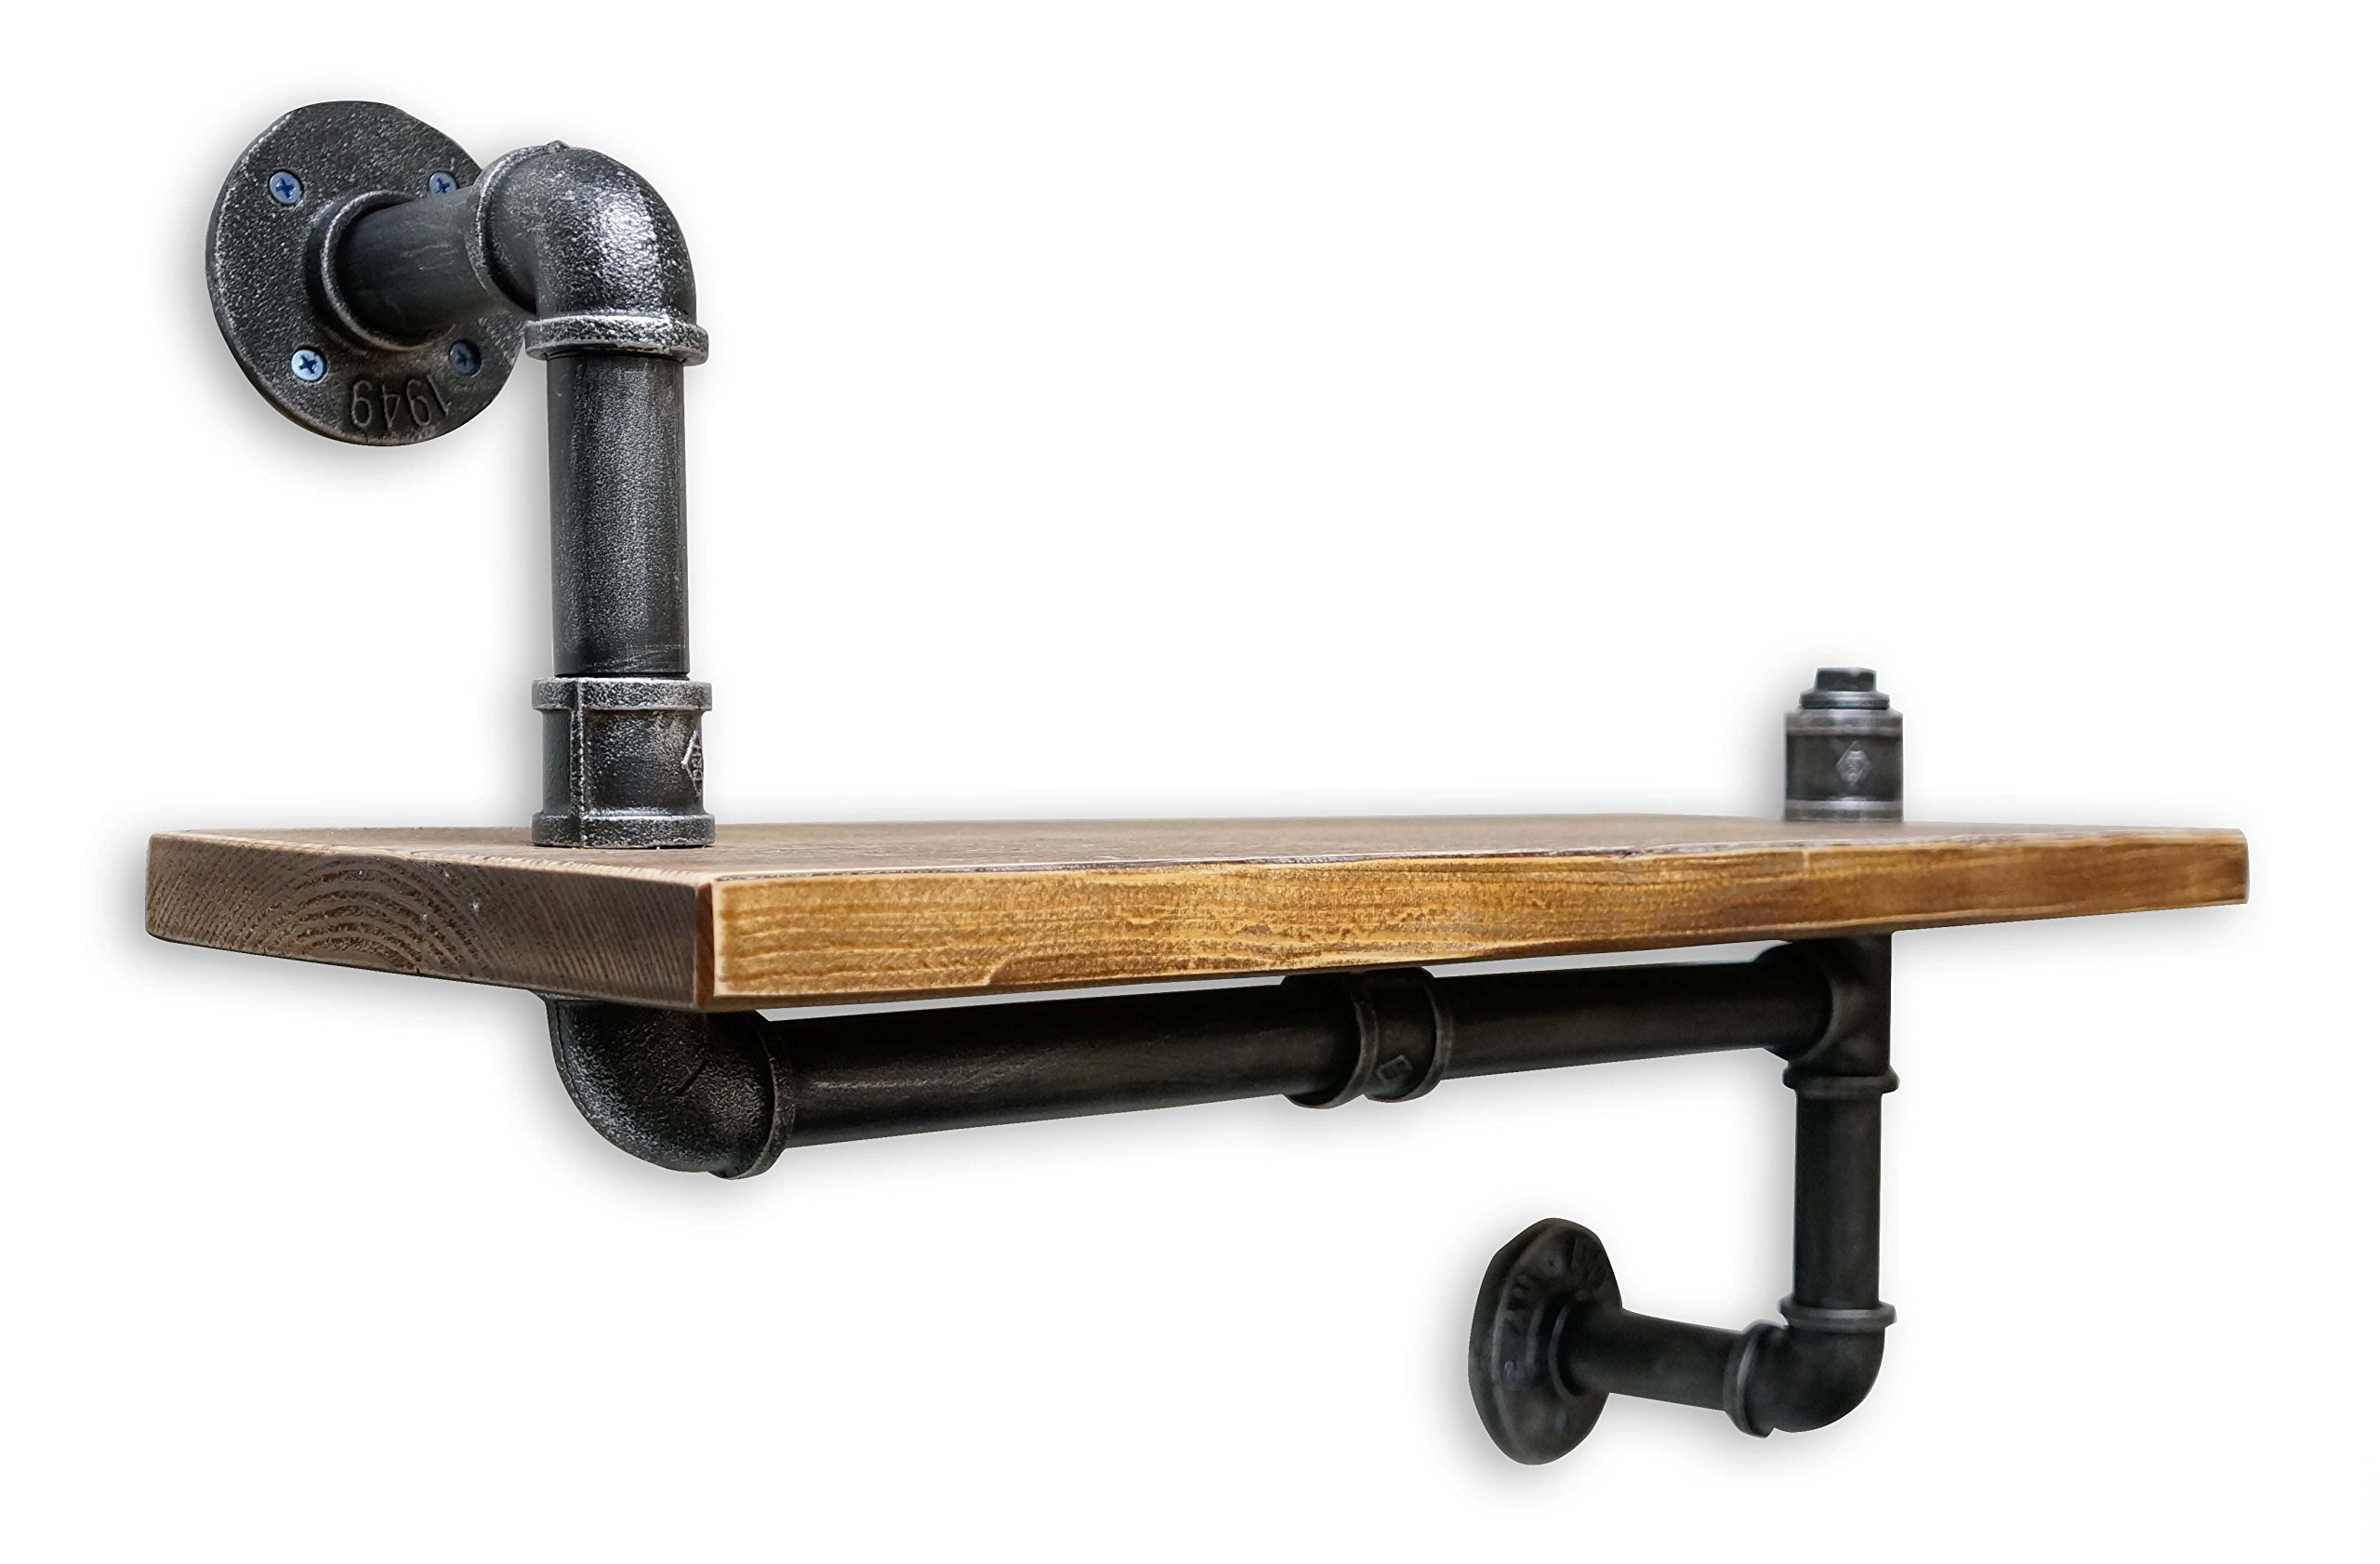 NACH Qa-1032 Diy Industrial Style Asymmetrical Silver Brushed Black Pipe and Single Rustic Modern Wood up Down Shelf, 24'' x 9.8'' by NACH (Image #2)